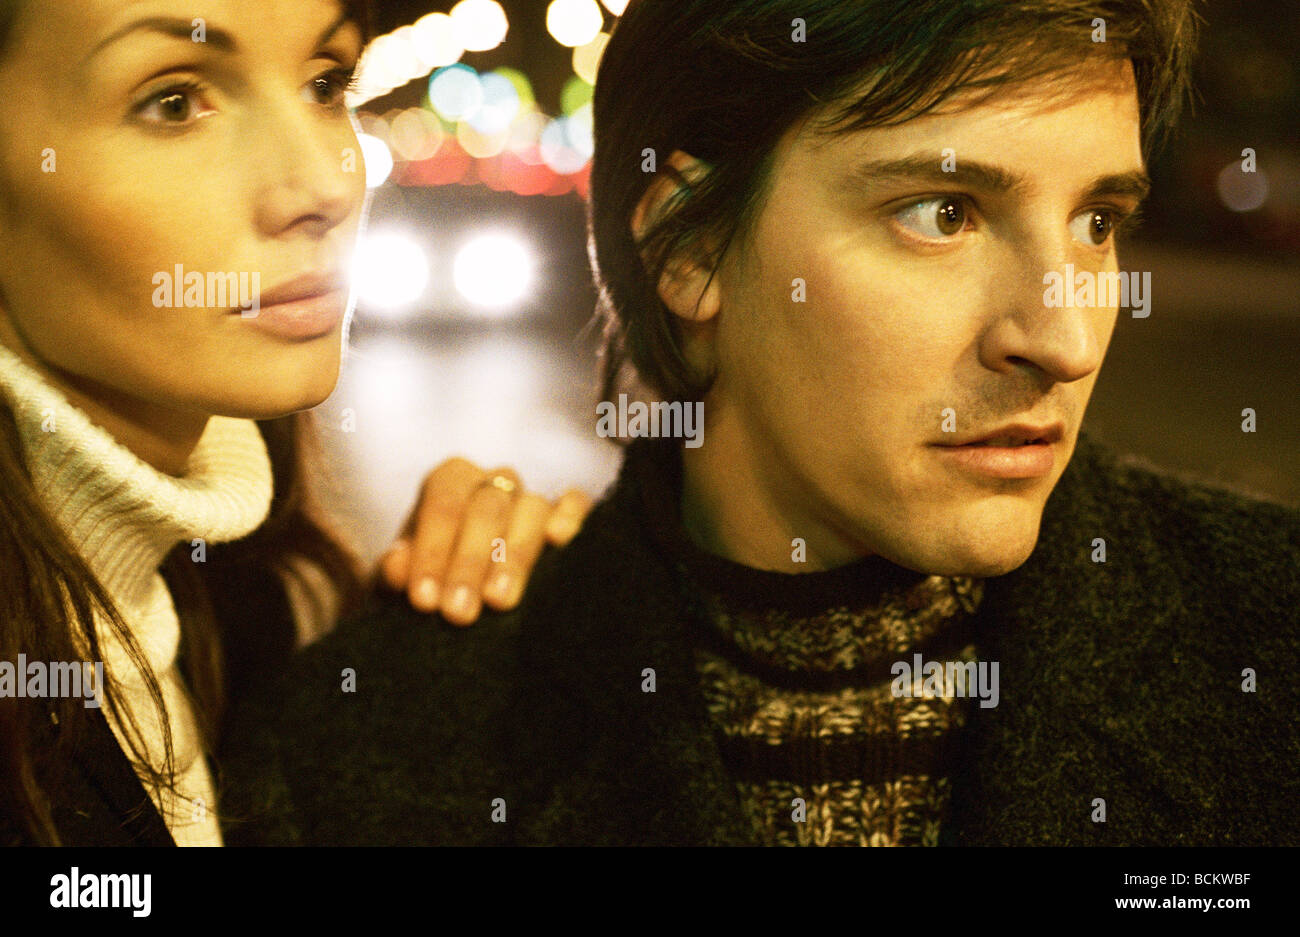 Woman with hand on man's shoulder at night, close-up - Stock Image